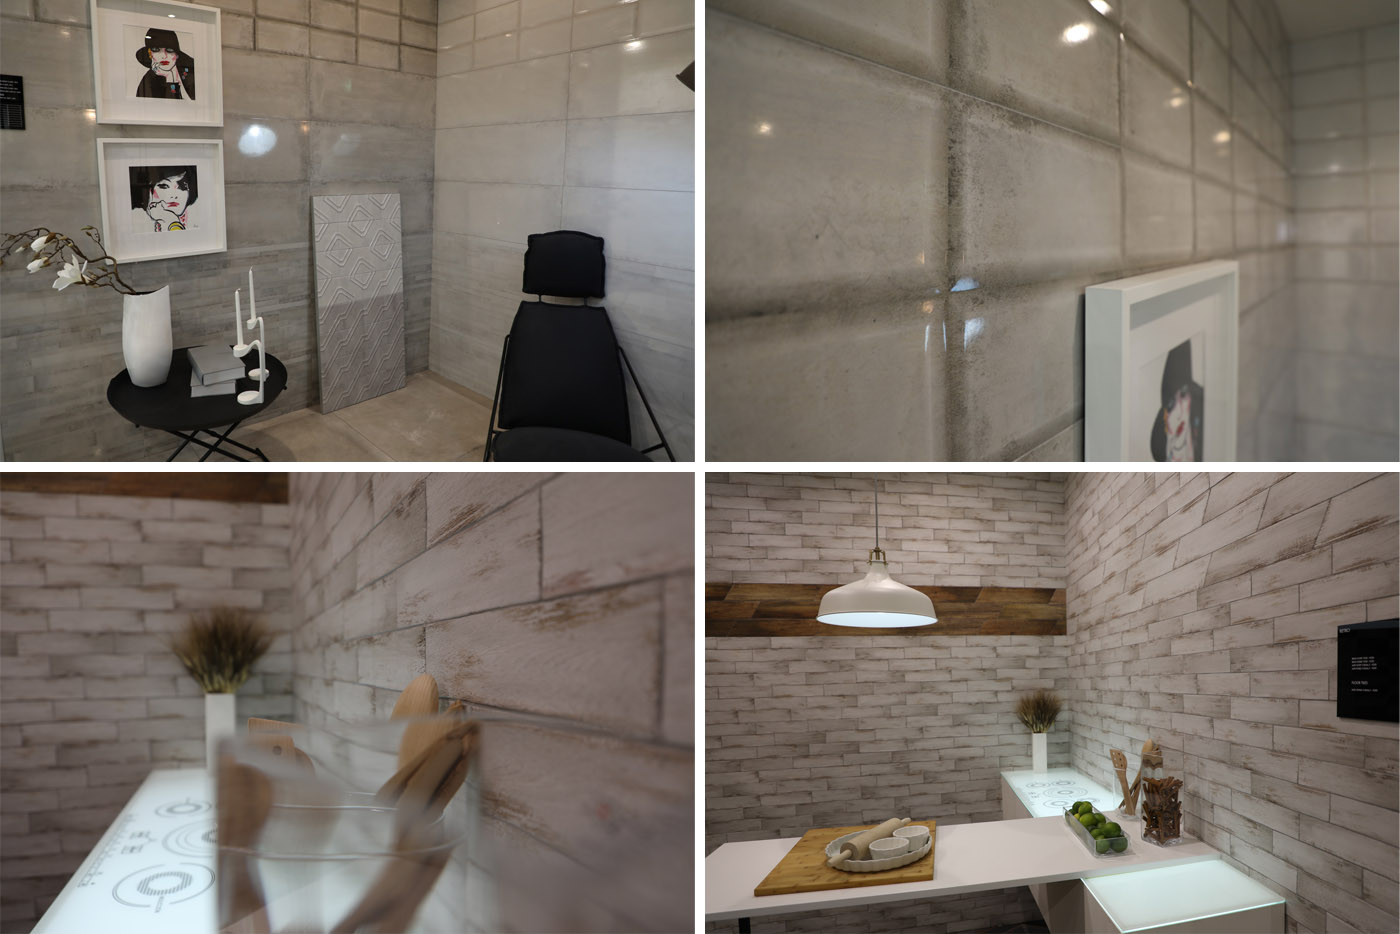 Ceramic and Porcelain Tiles by Fanal